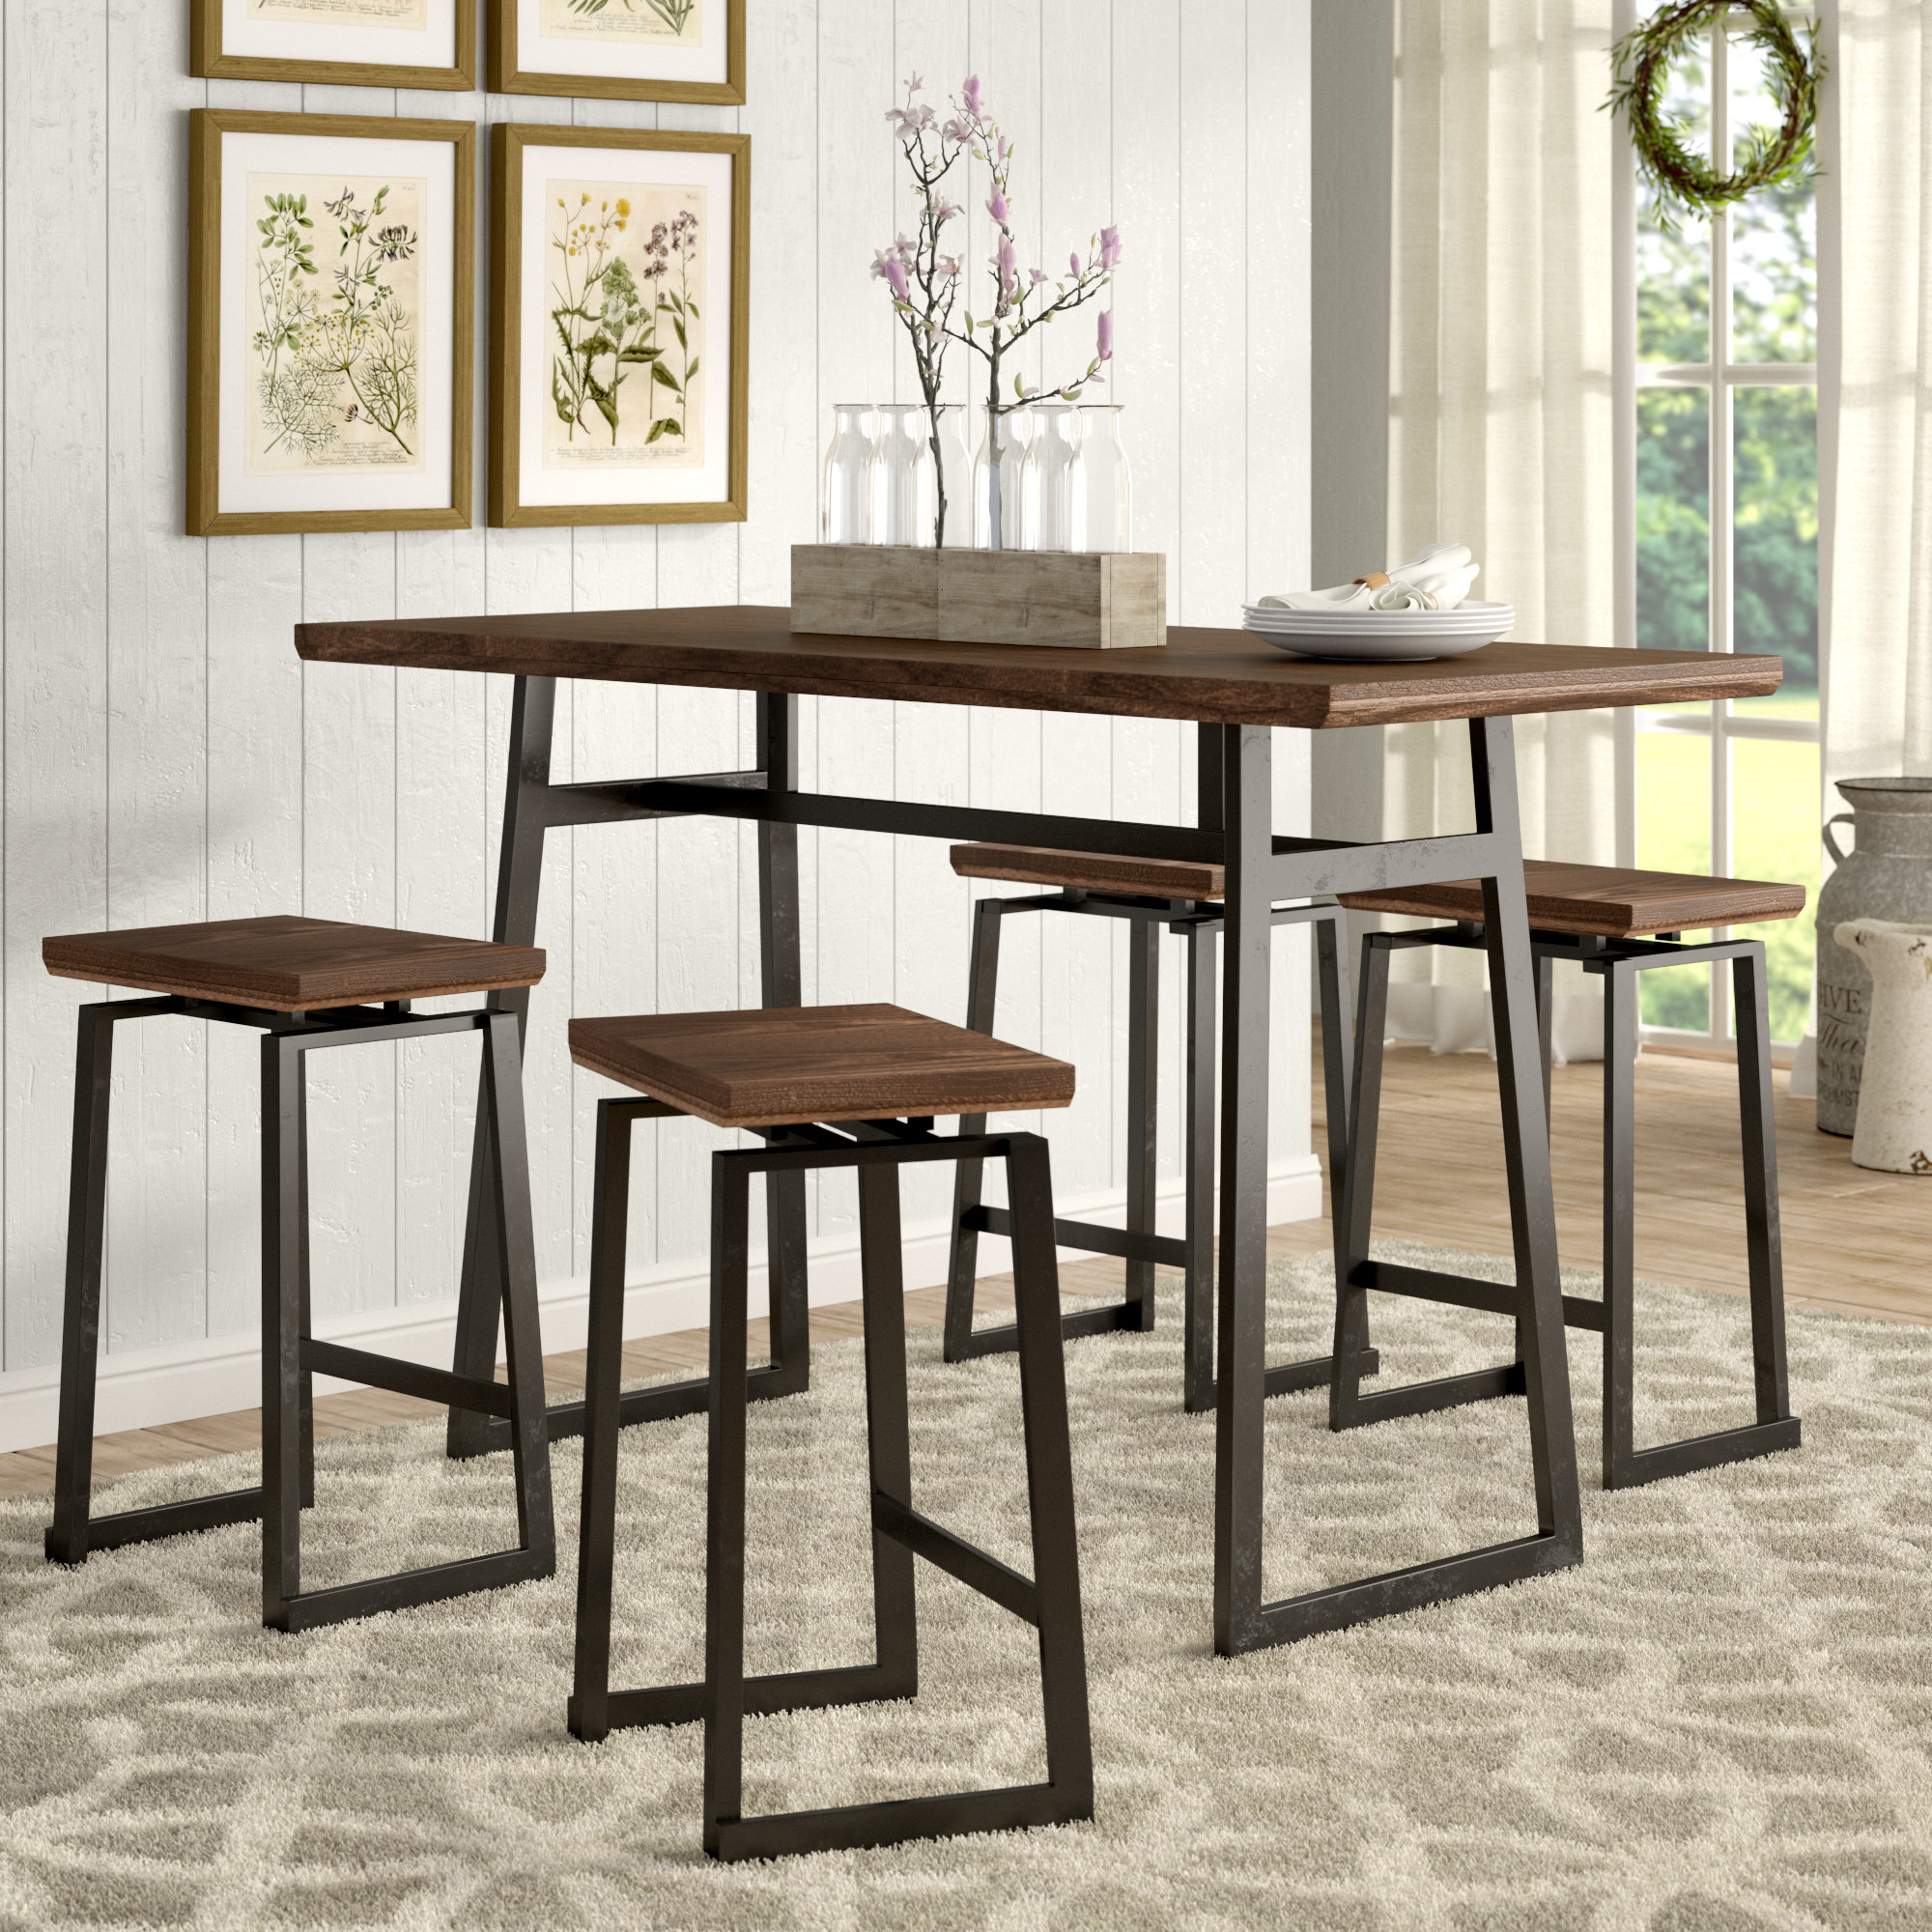 Cassiopeia Industrial 5 Piece Counter Height Dining Set Throughout 2017 Winsted 4 Piece Counter Height Dining Sets (View 3 of 20)